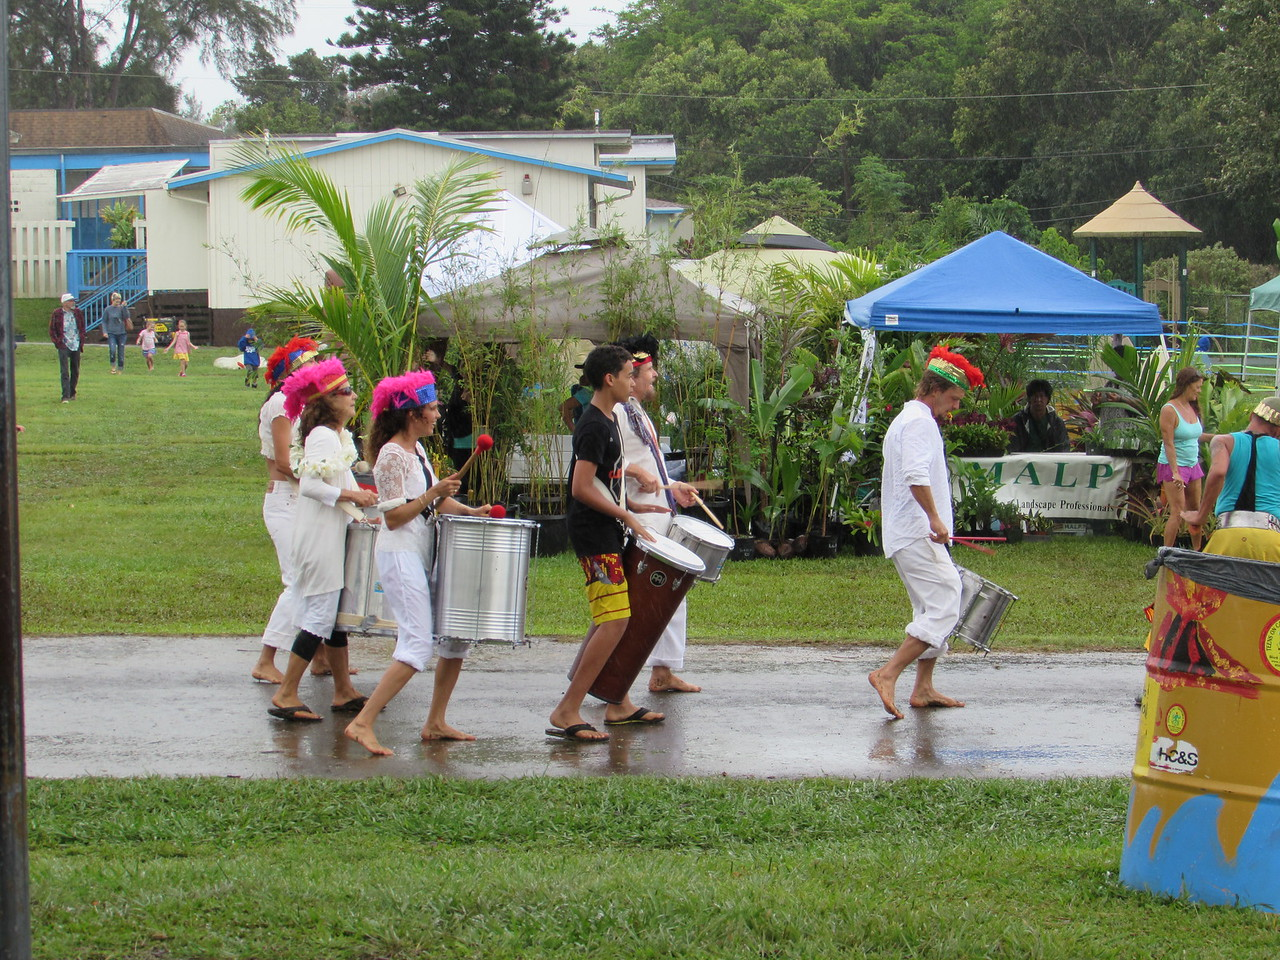 Opening ceremony - in the rain. Fortunately, it stopped after a bit.